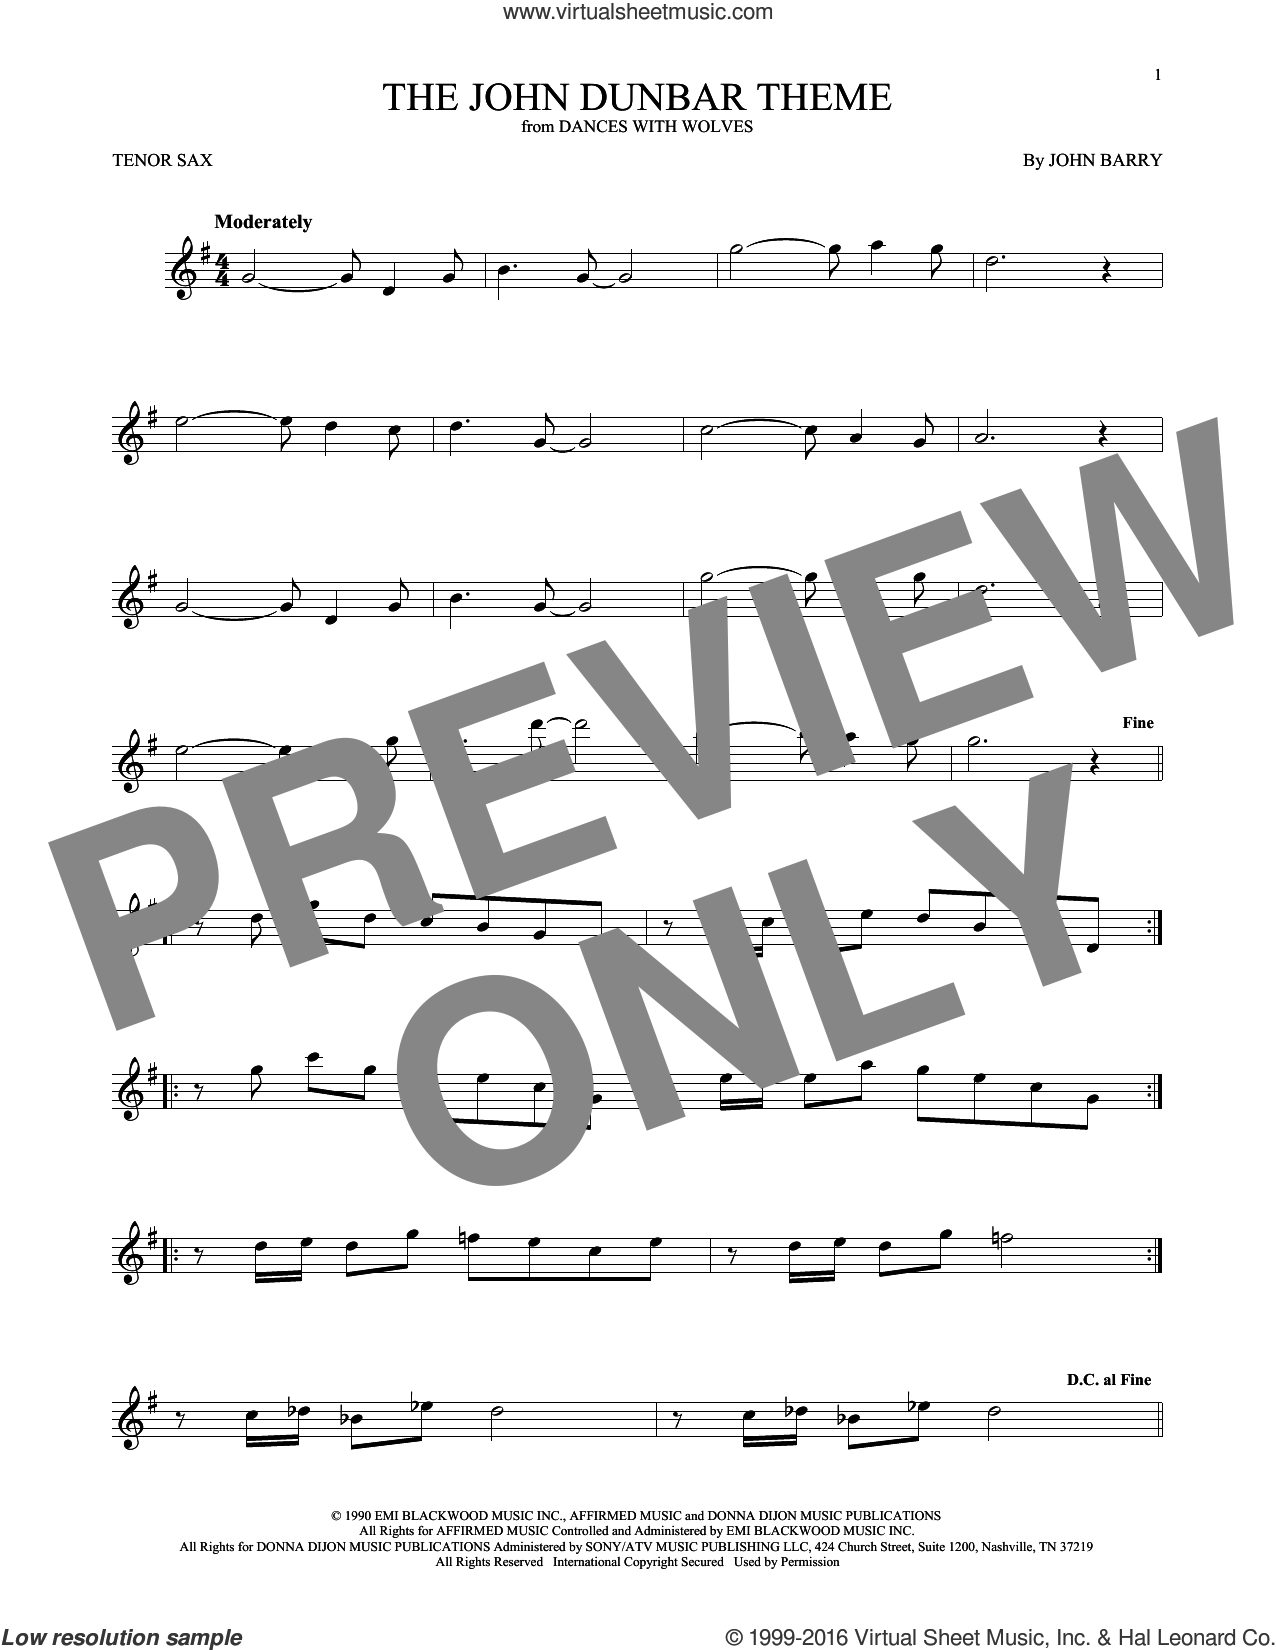 The John Dunbar Theme sheet music for tenor saxophone solo ( Sax) by John Barry. Score Image Preview.